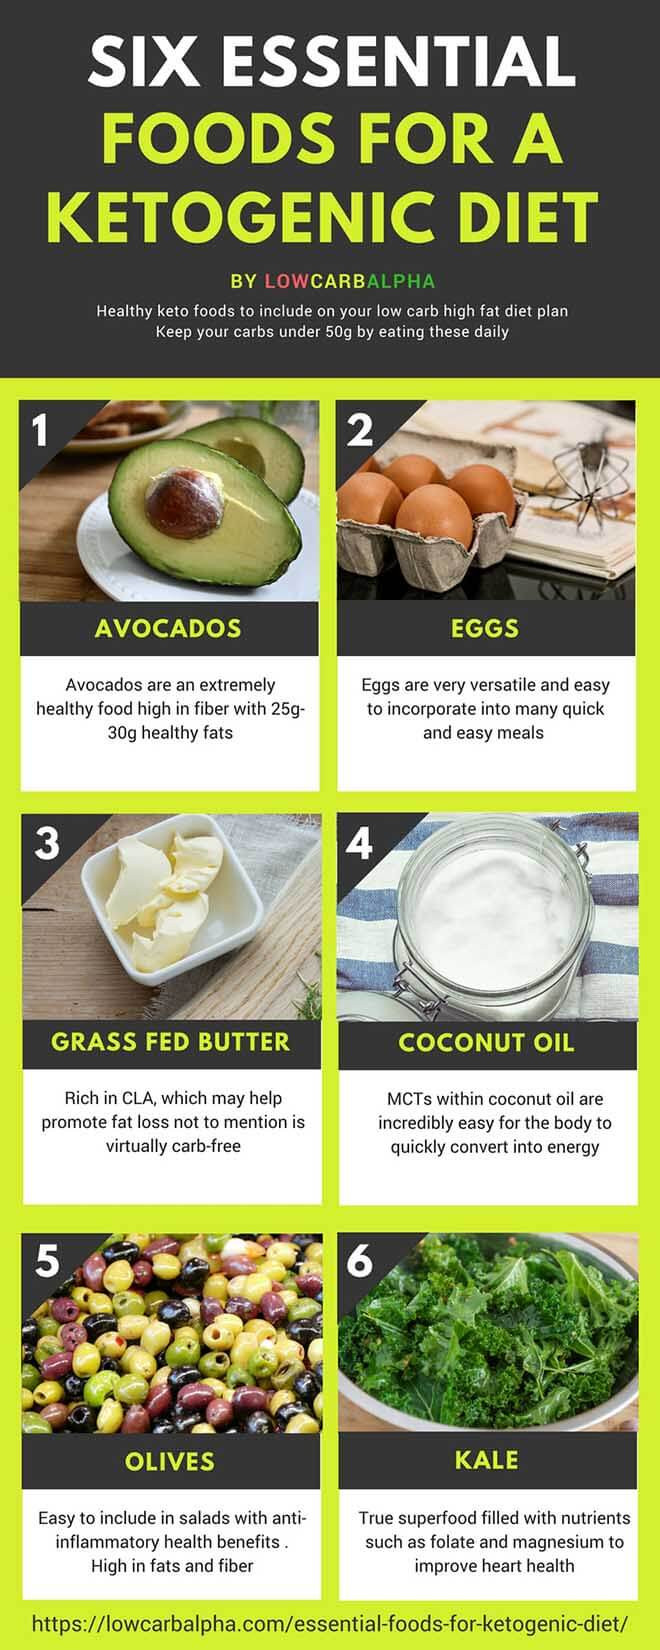 Keto Diet Is It Healthy  Six essential foods for a Ketogenic Diet to Nurture your Body